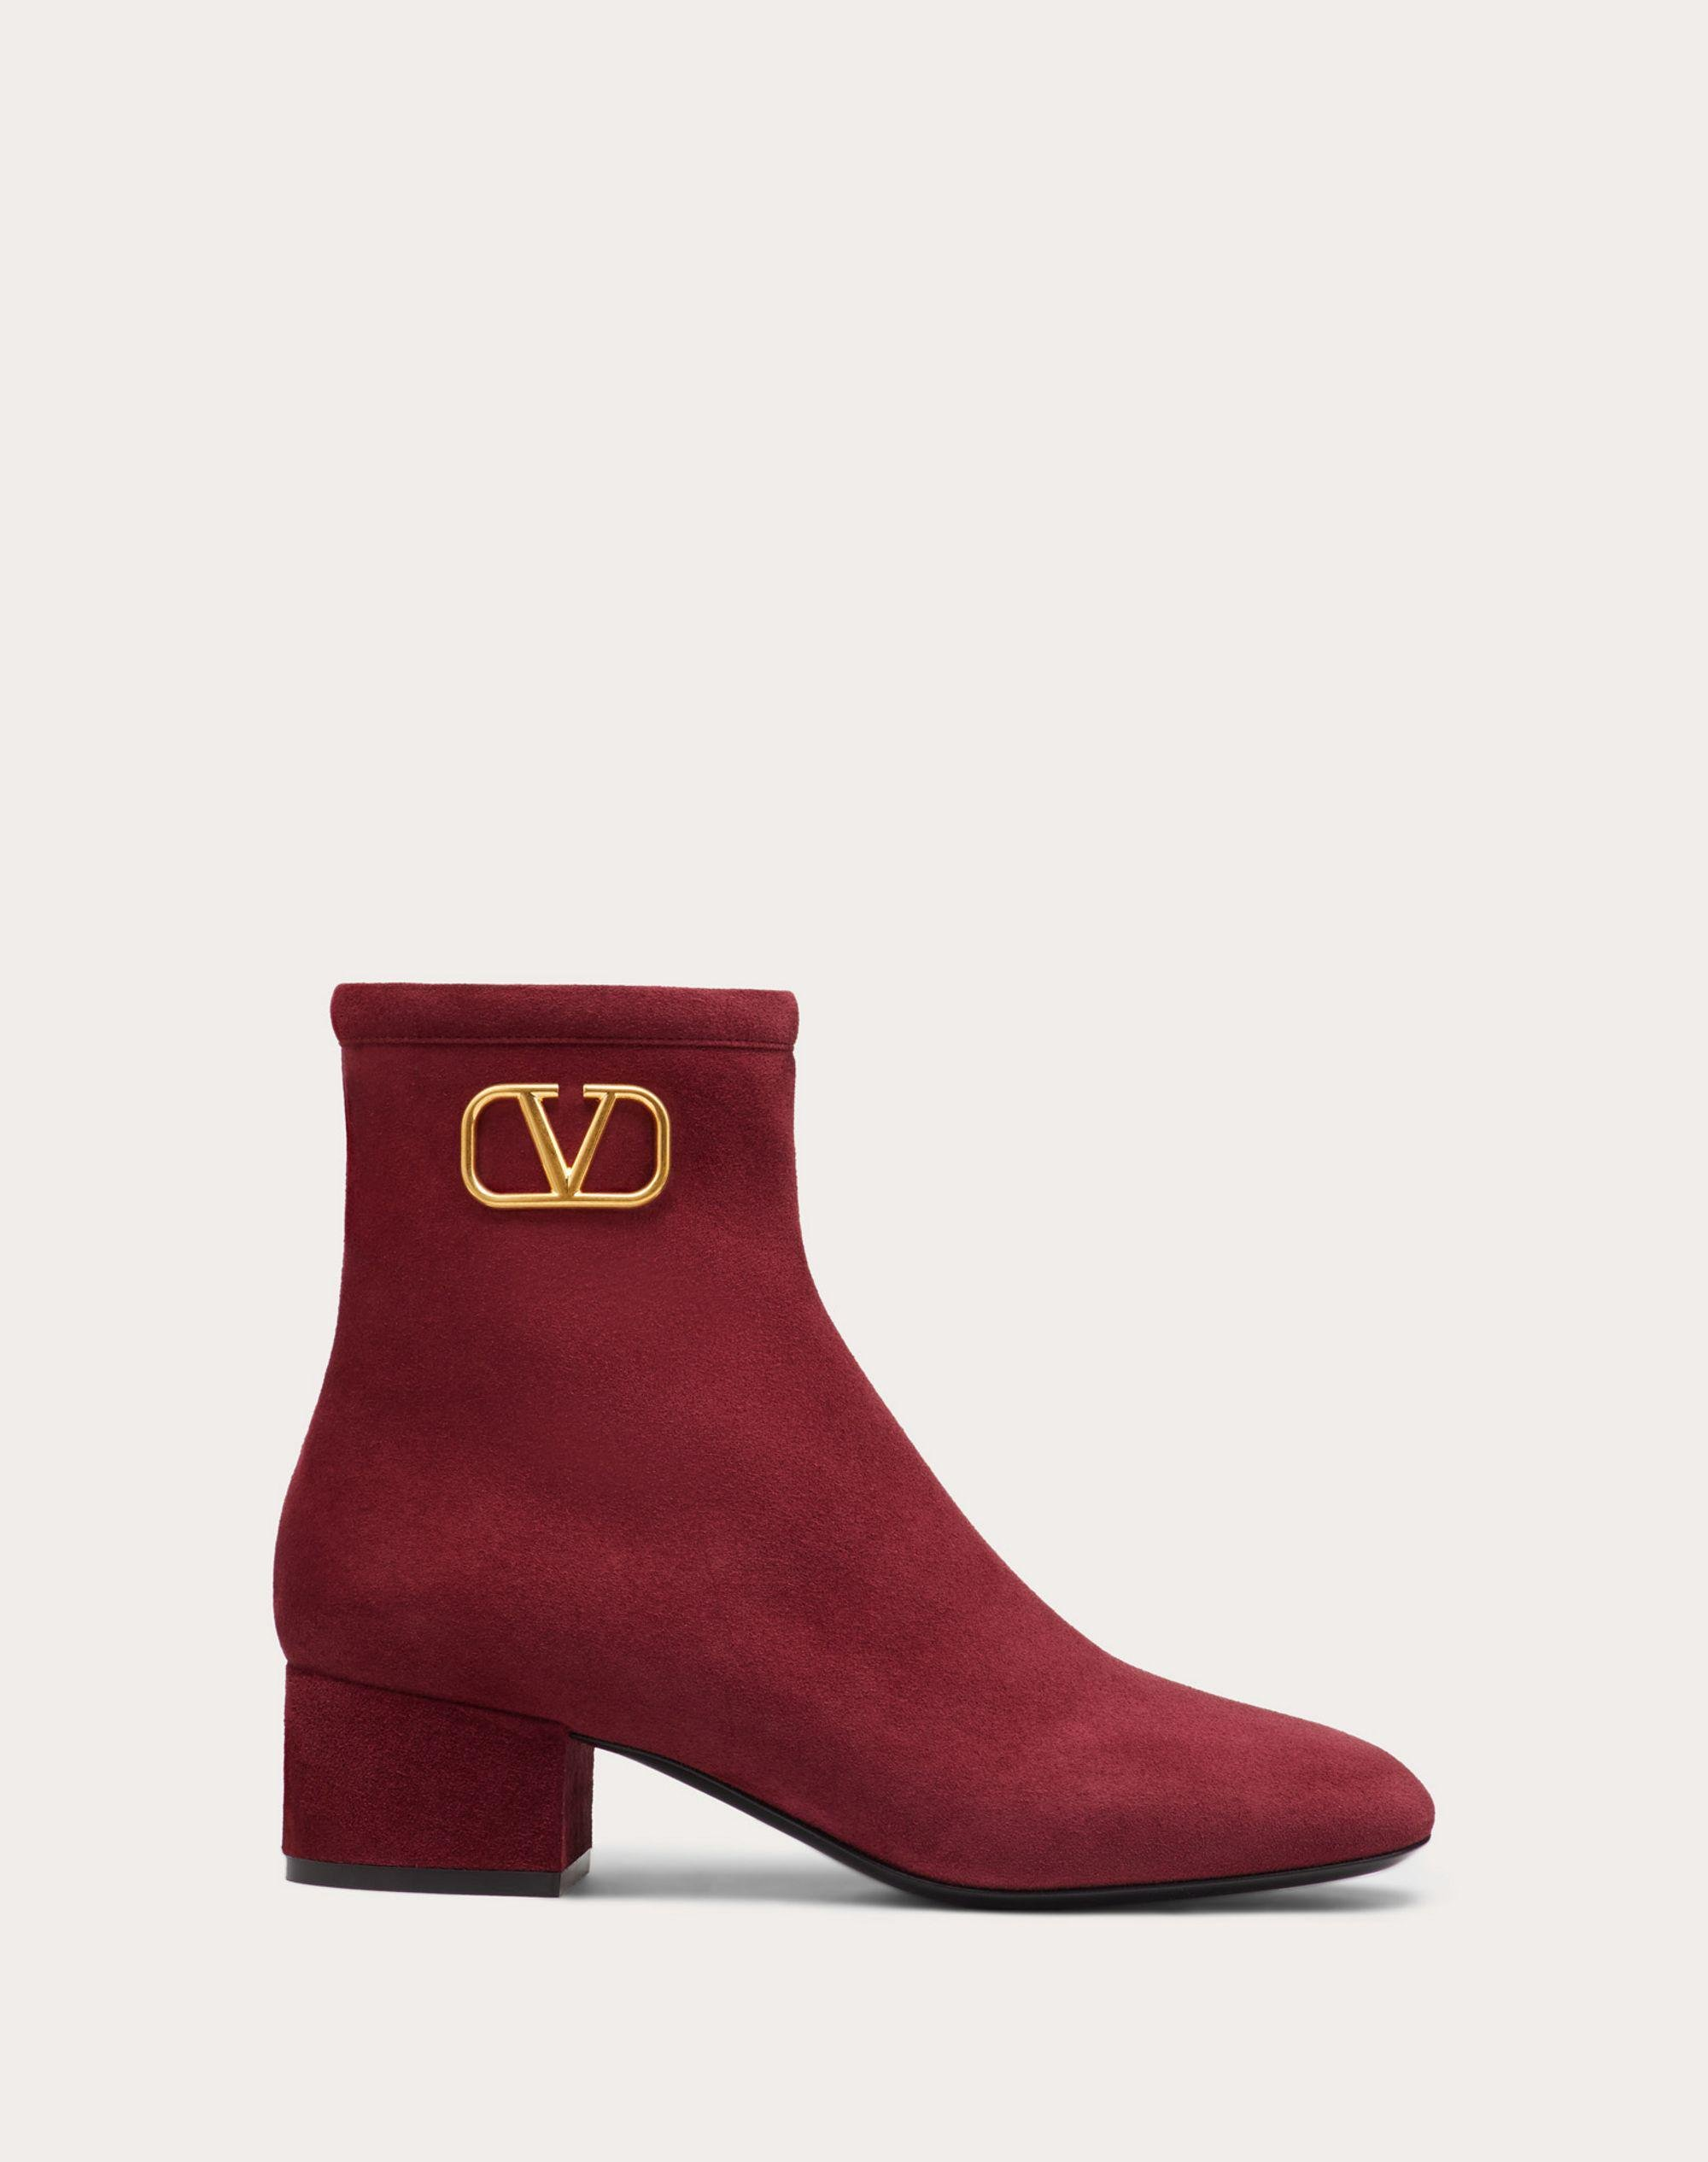 VLogo Signature Suede Ankle Boot 45 mm / 1.8 in.